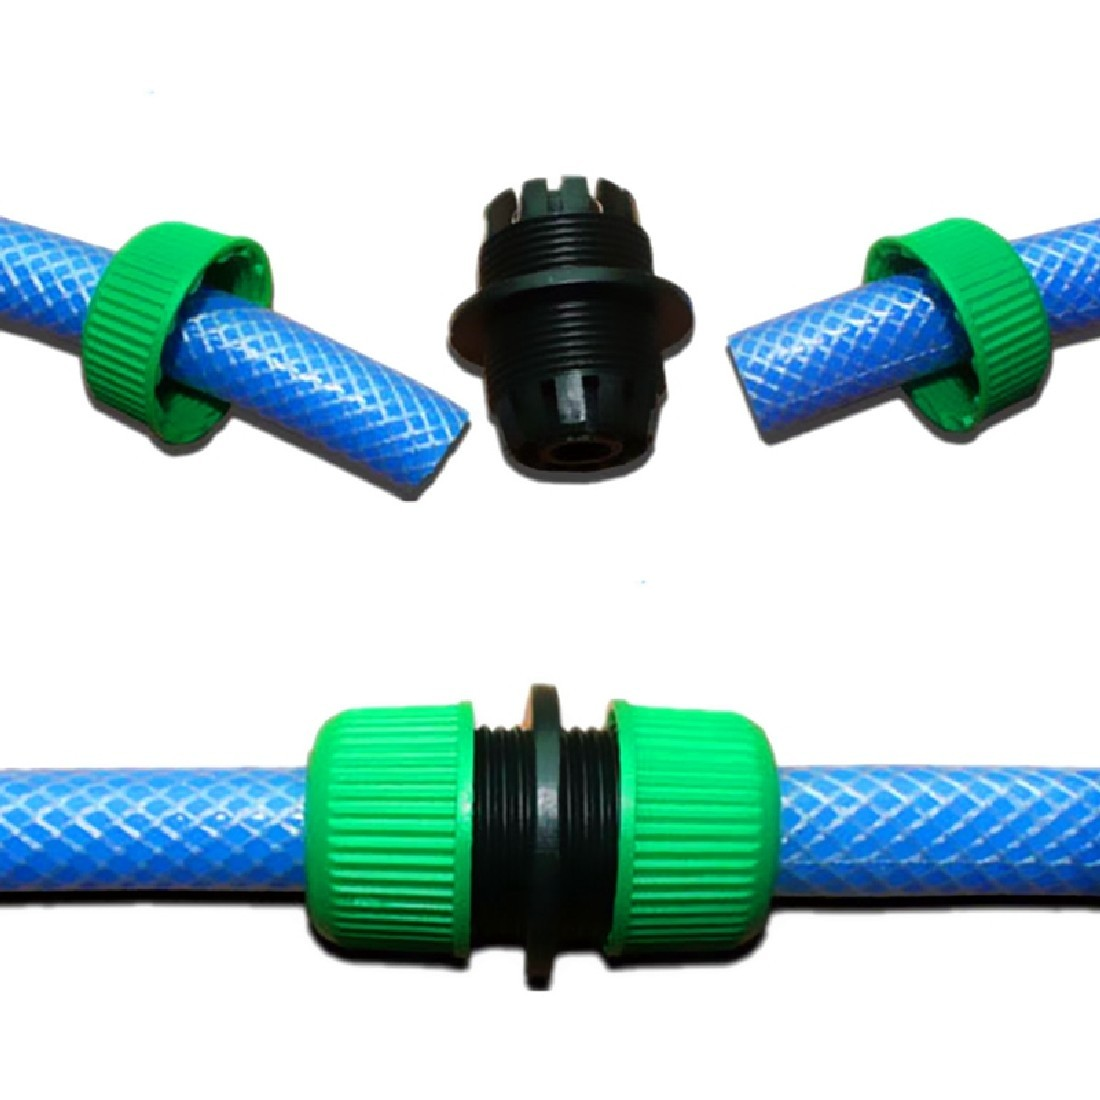 New 1/2'' Garden Water Hose Connector Pipe Quick Connectors Joining Mender Repair Leaking Joiner Connector Adapter